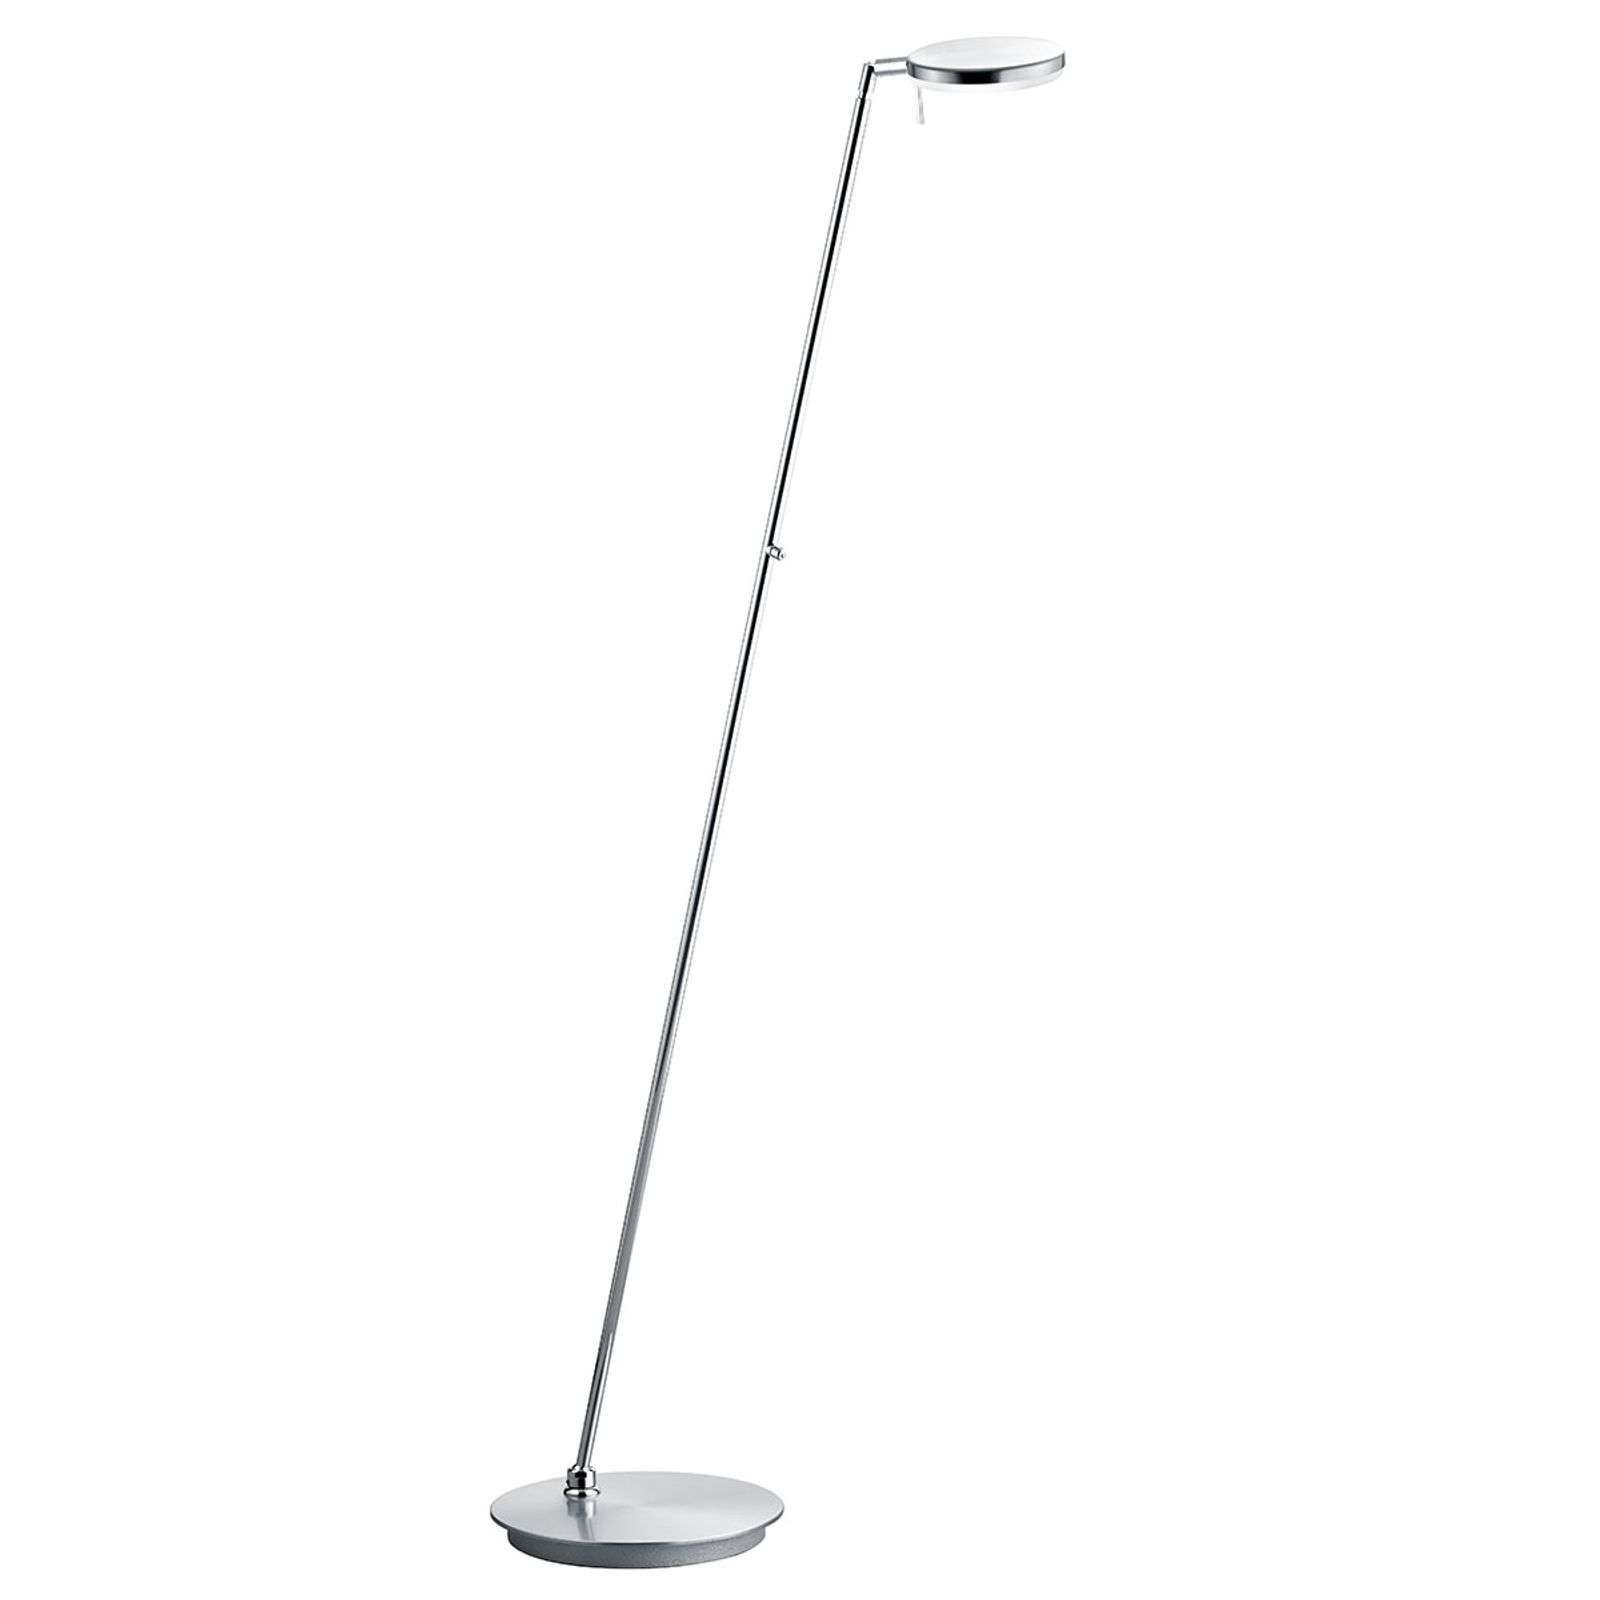 Lámpara de pie LED Omega orientable, níquel